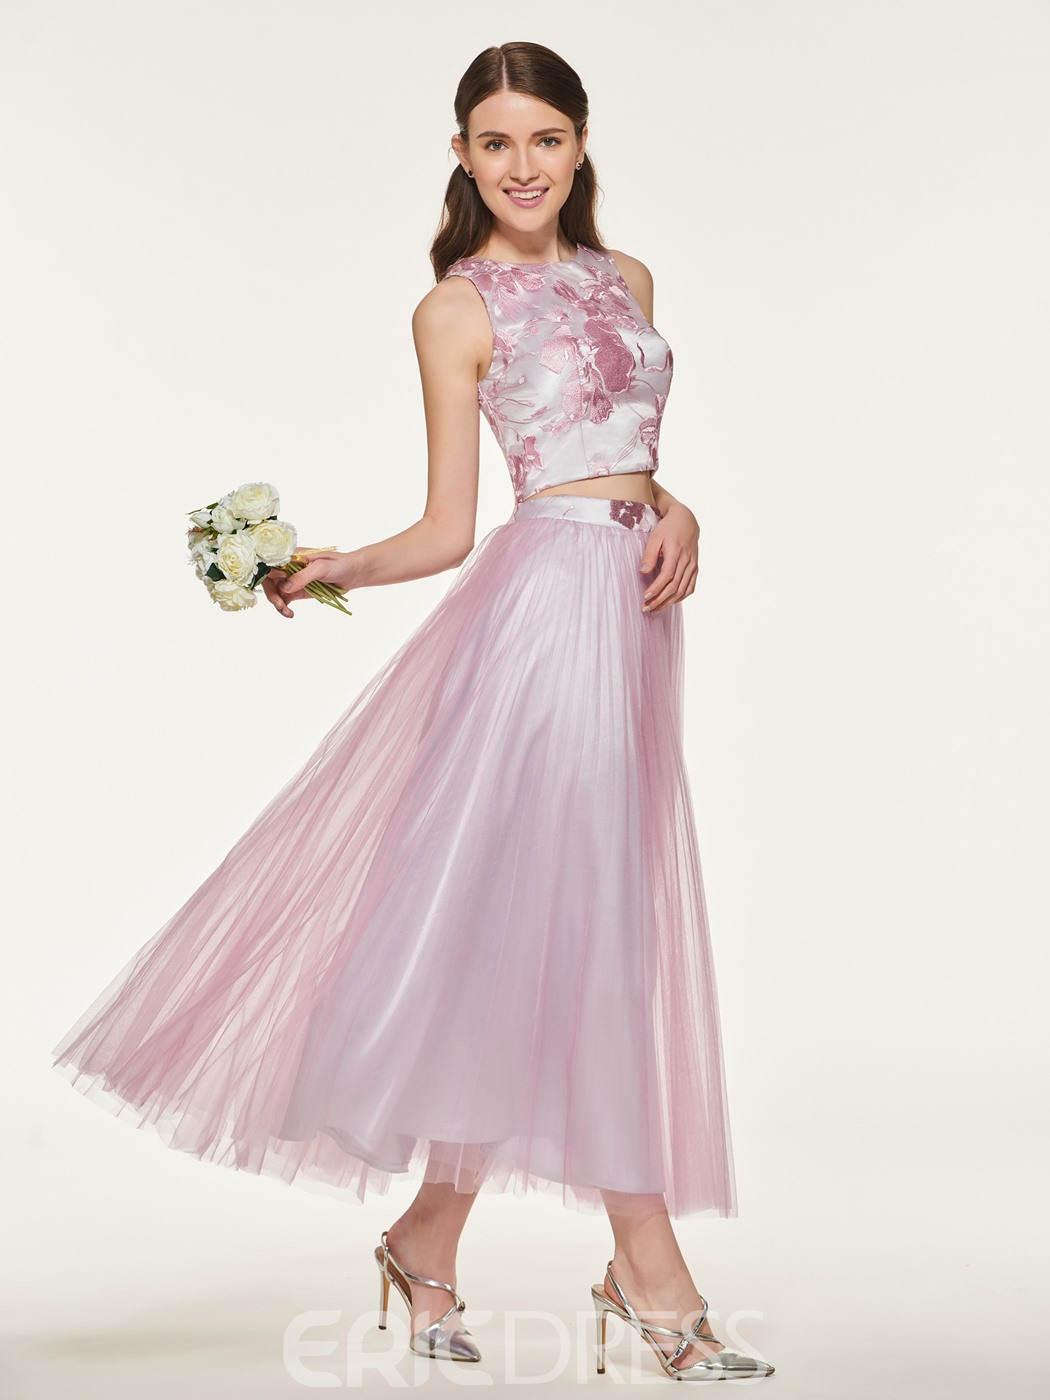 Ericdress two pieces a line tulle bridesmaid dress 13169630 ericdress two pieces a line tulle bridesmaid dress ombrellifo Images